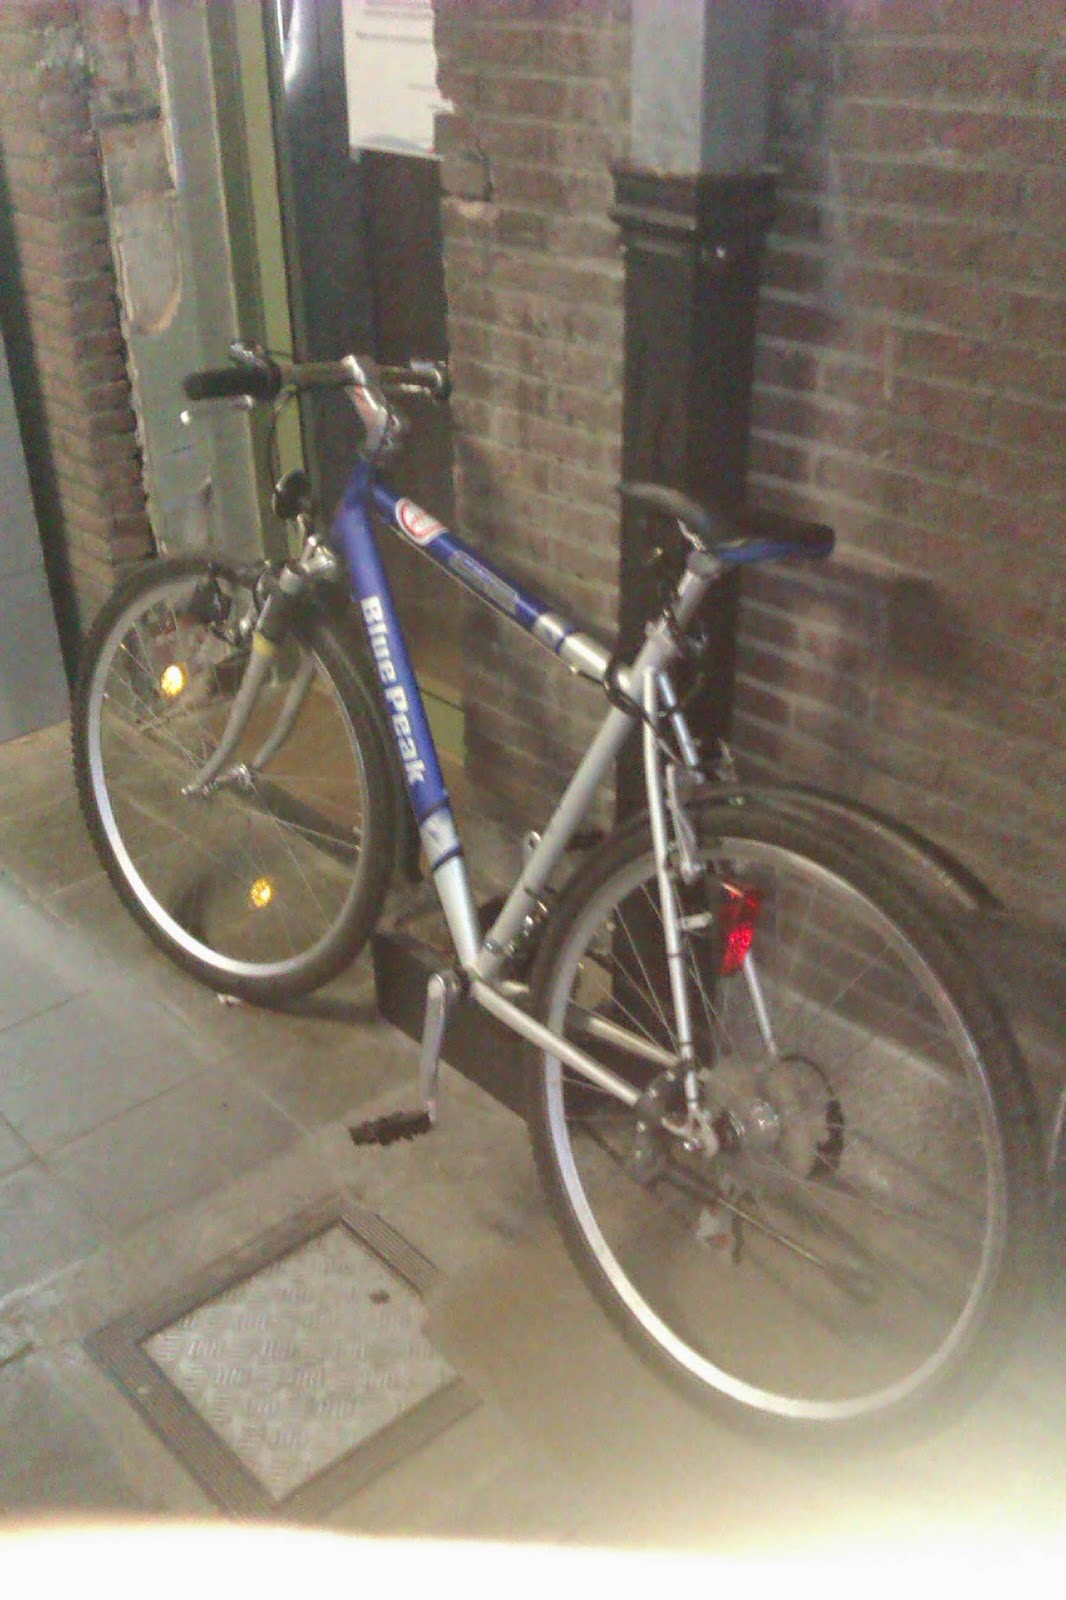 Bike in Station in Limburg